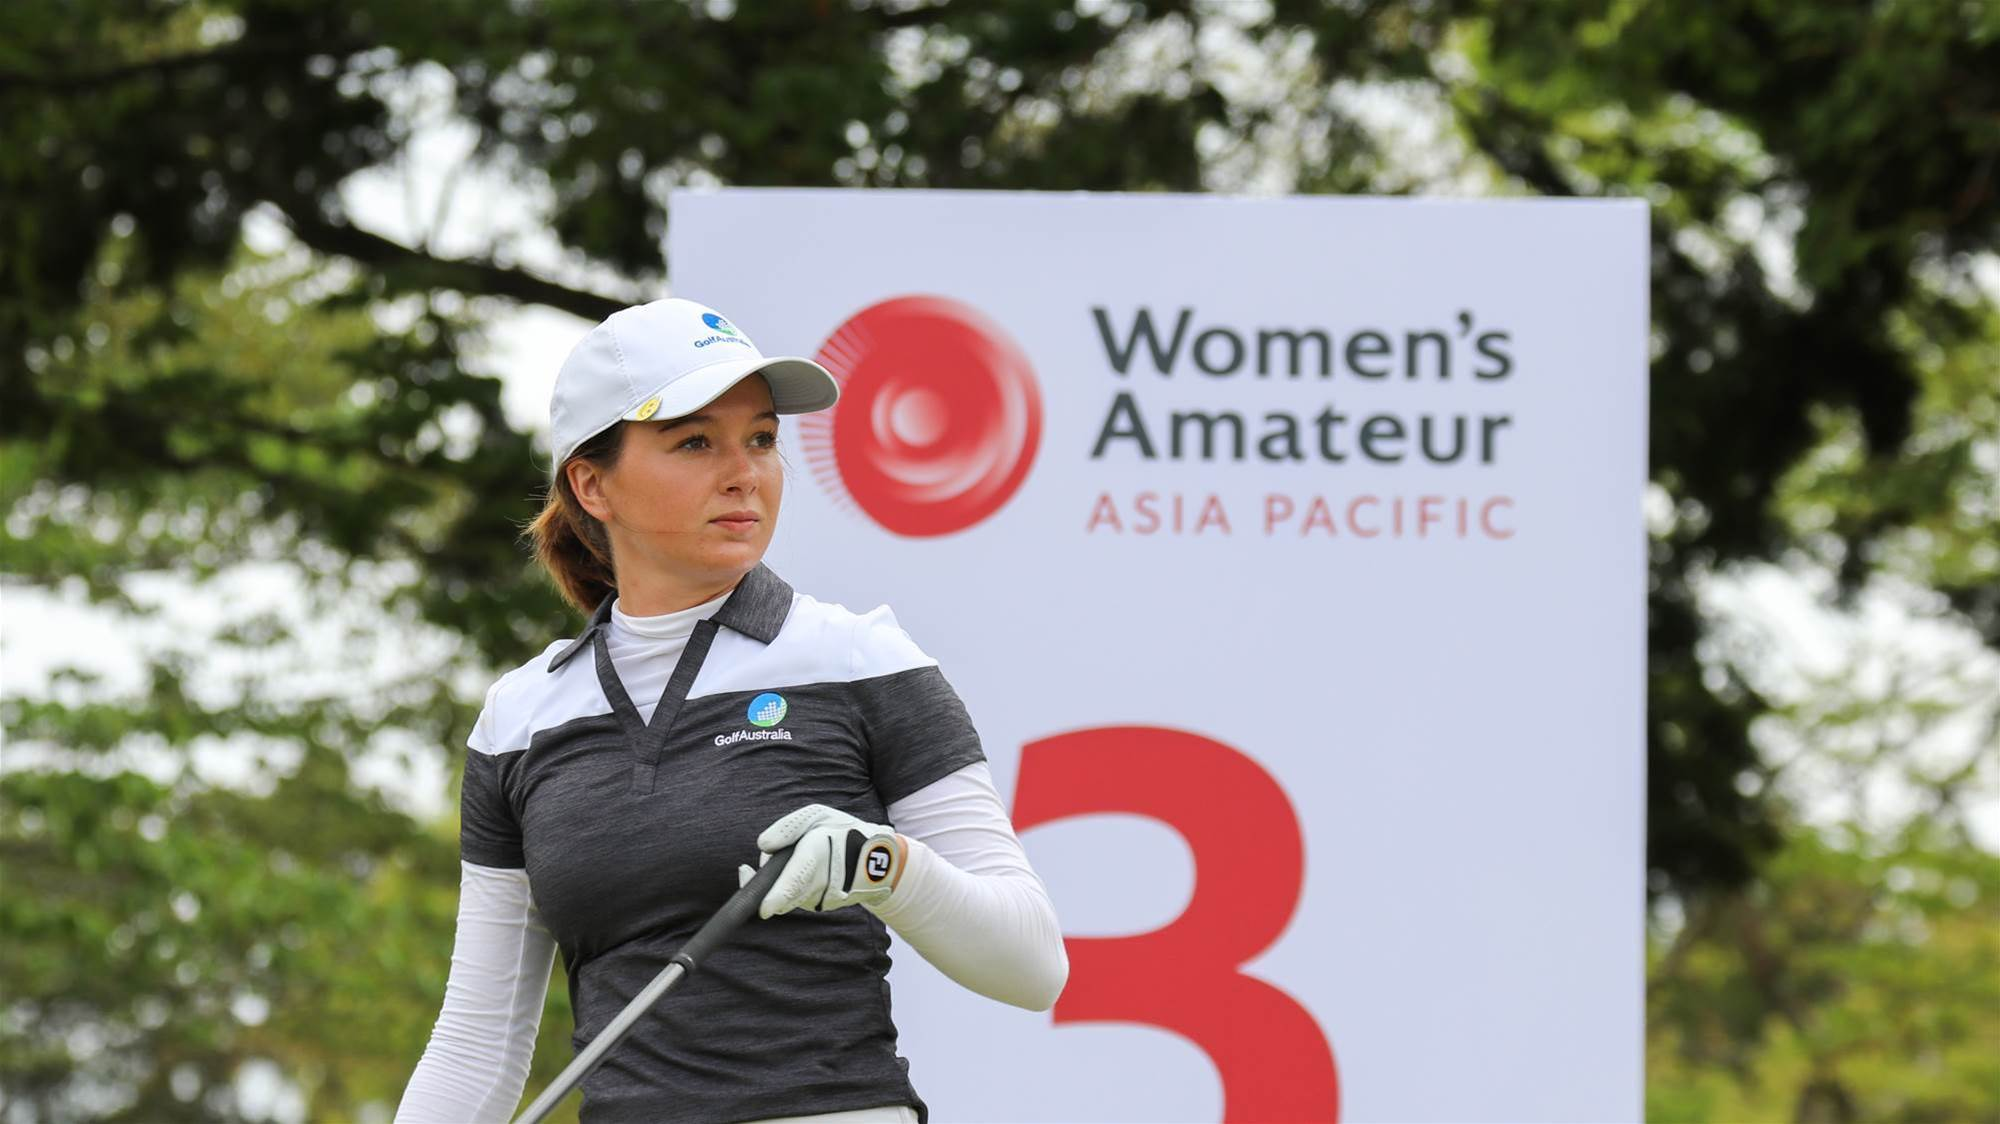 Aussies upbeat after Women's Amateur Asia Pacific